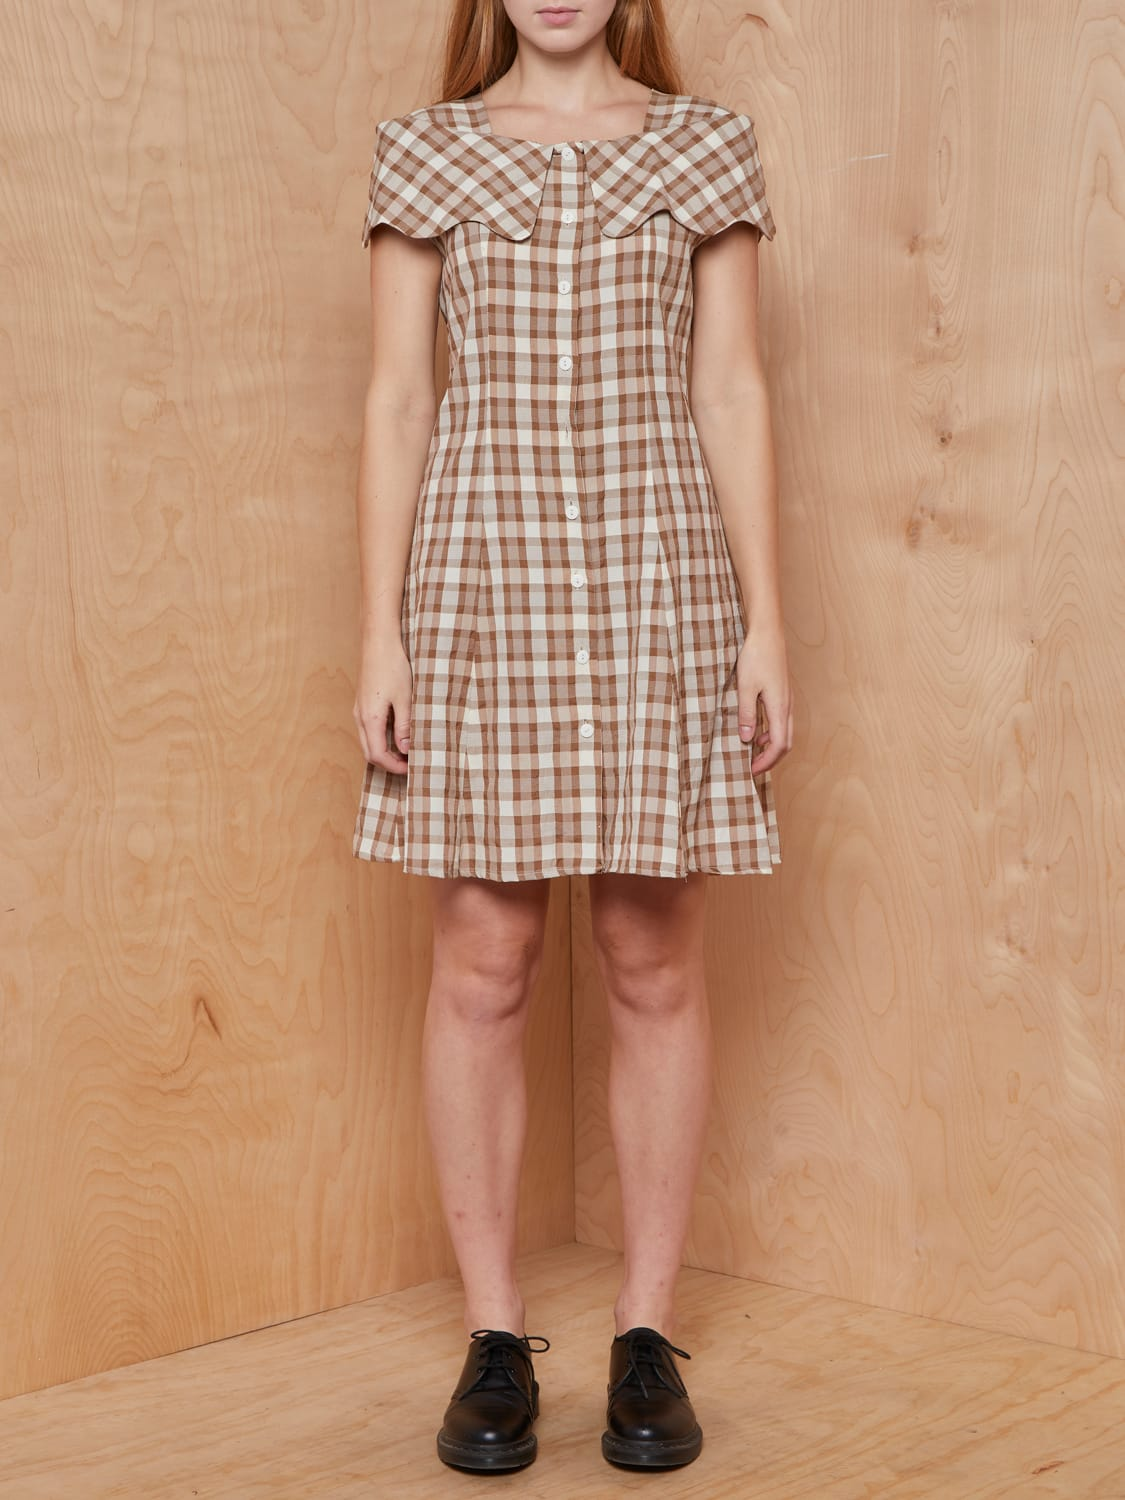 Vintage Cream and Brown Seersucker Gingham Dress with Tie Back